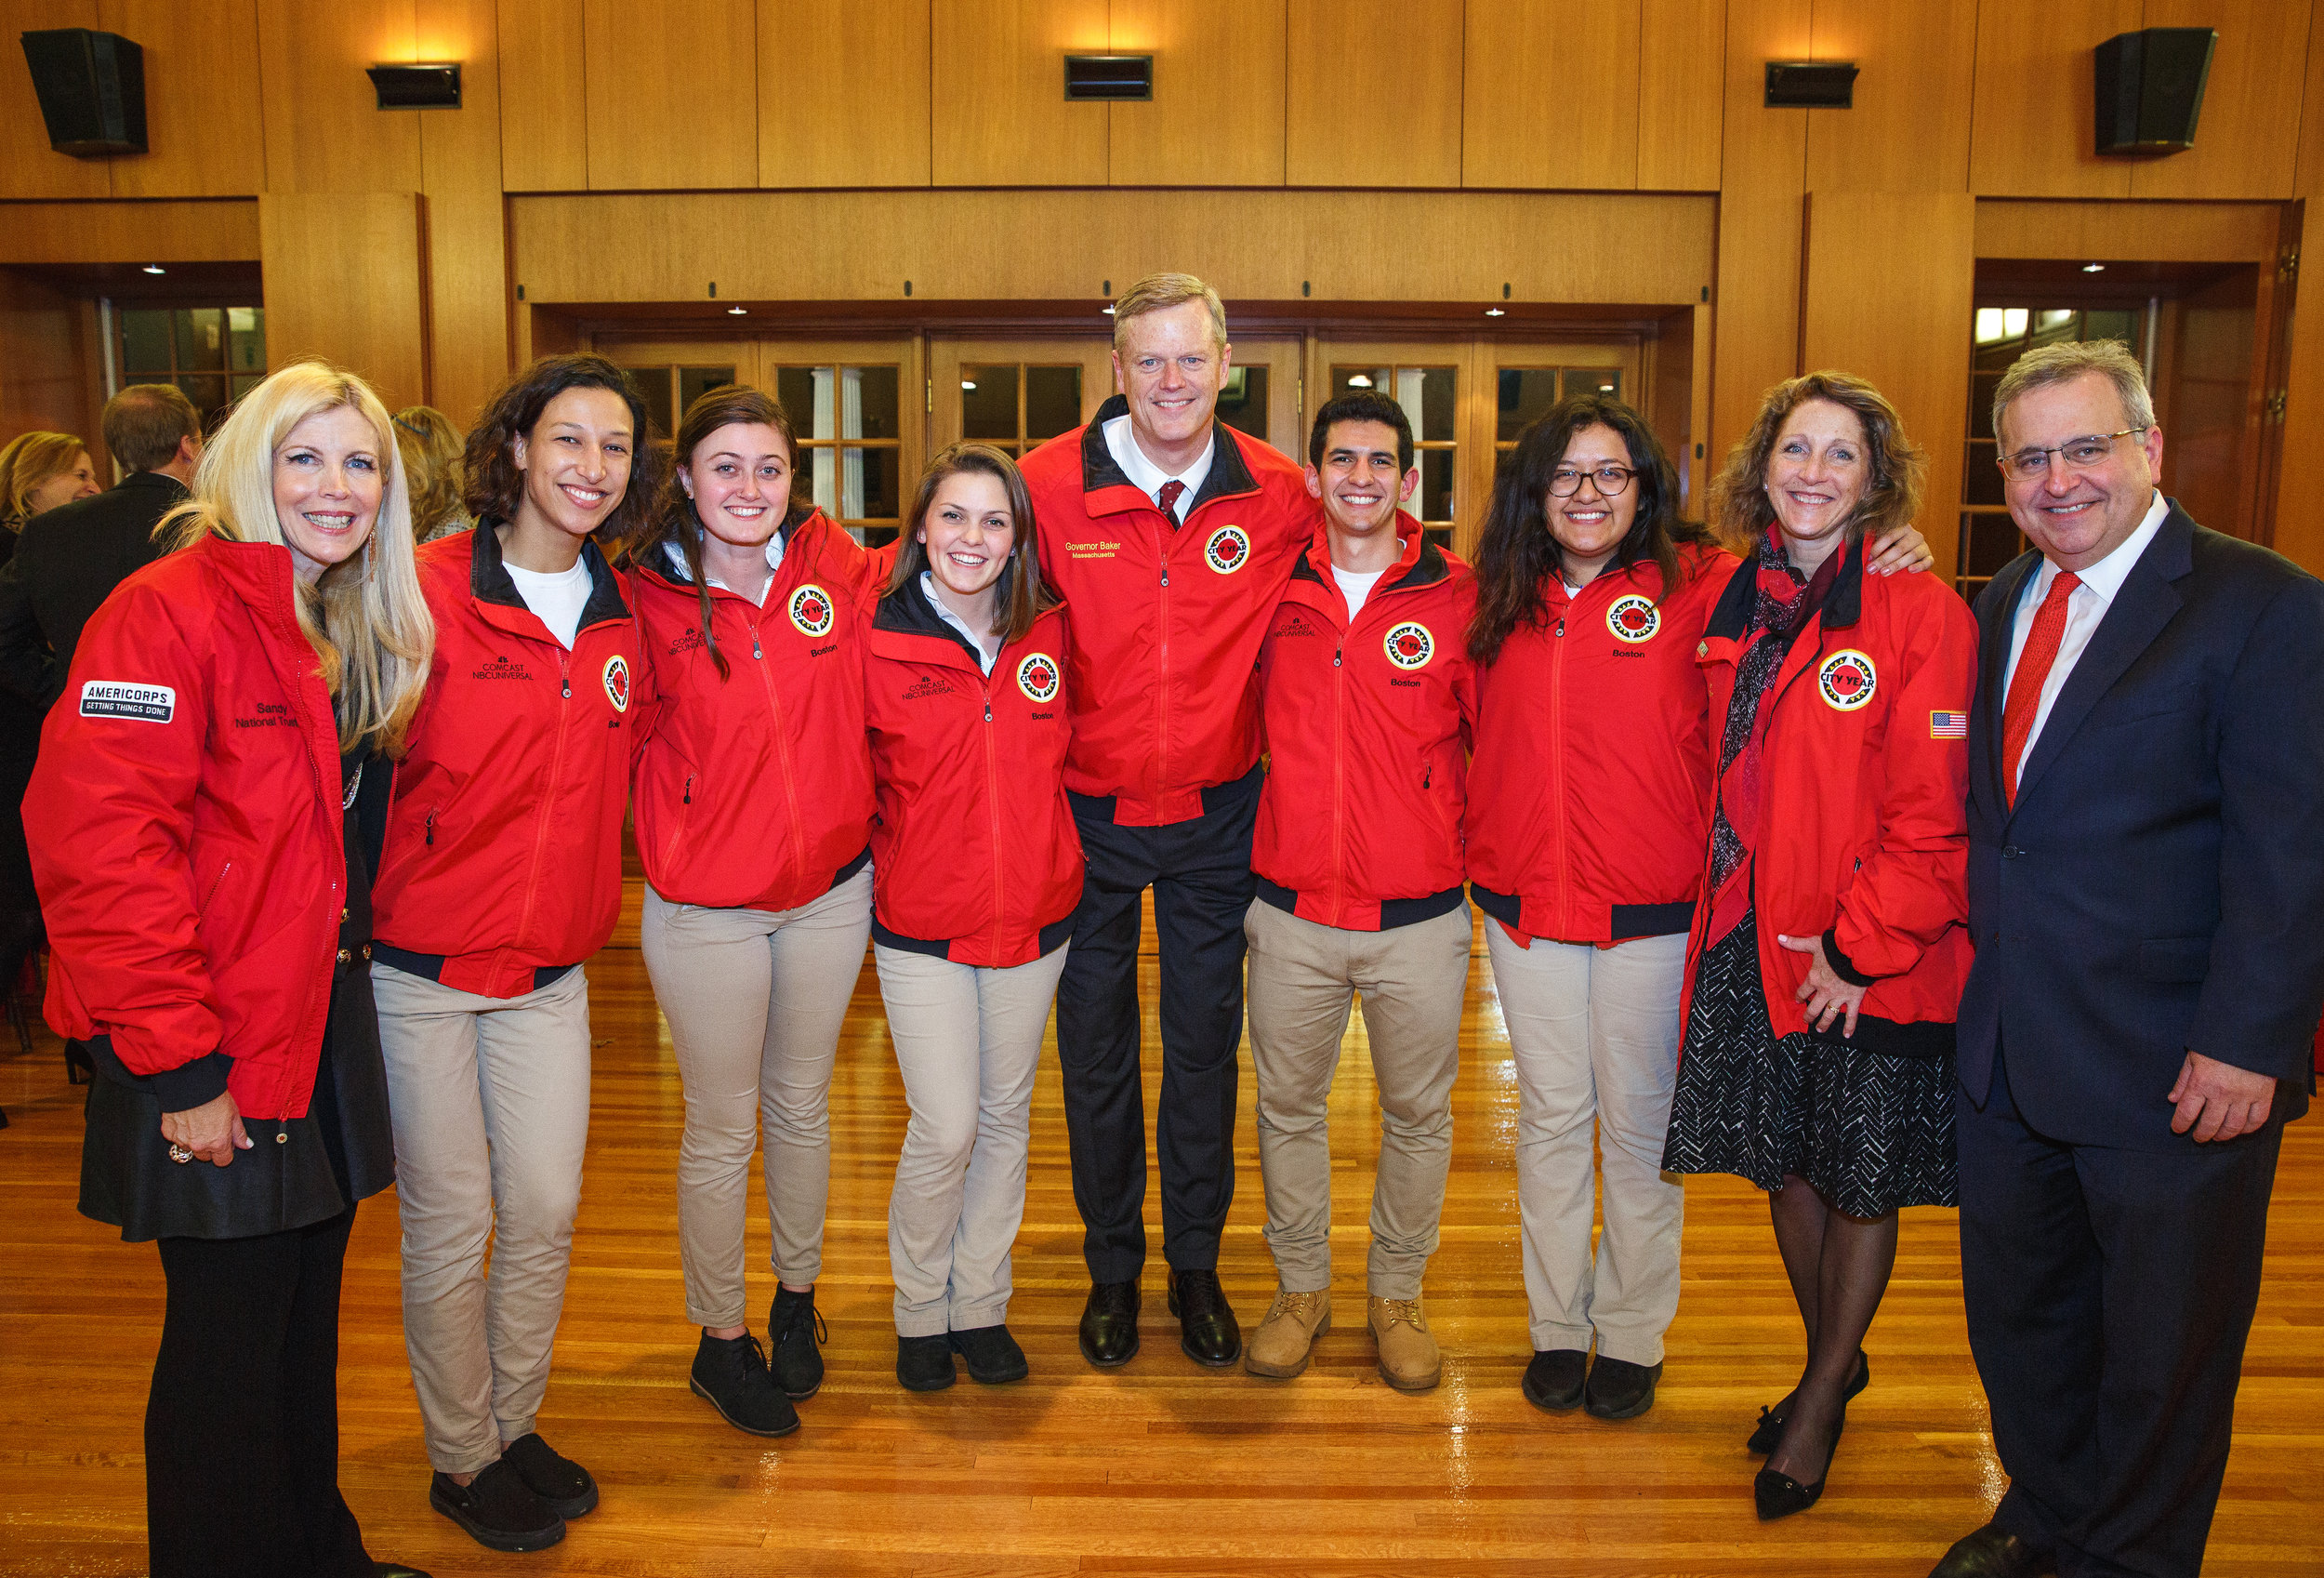 Governor Charlie Baker and his wife Lauren Baker with Sandy Edgerley, Michael Brown and City Year AmeriCorps members